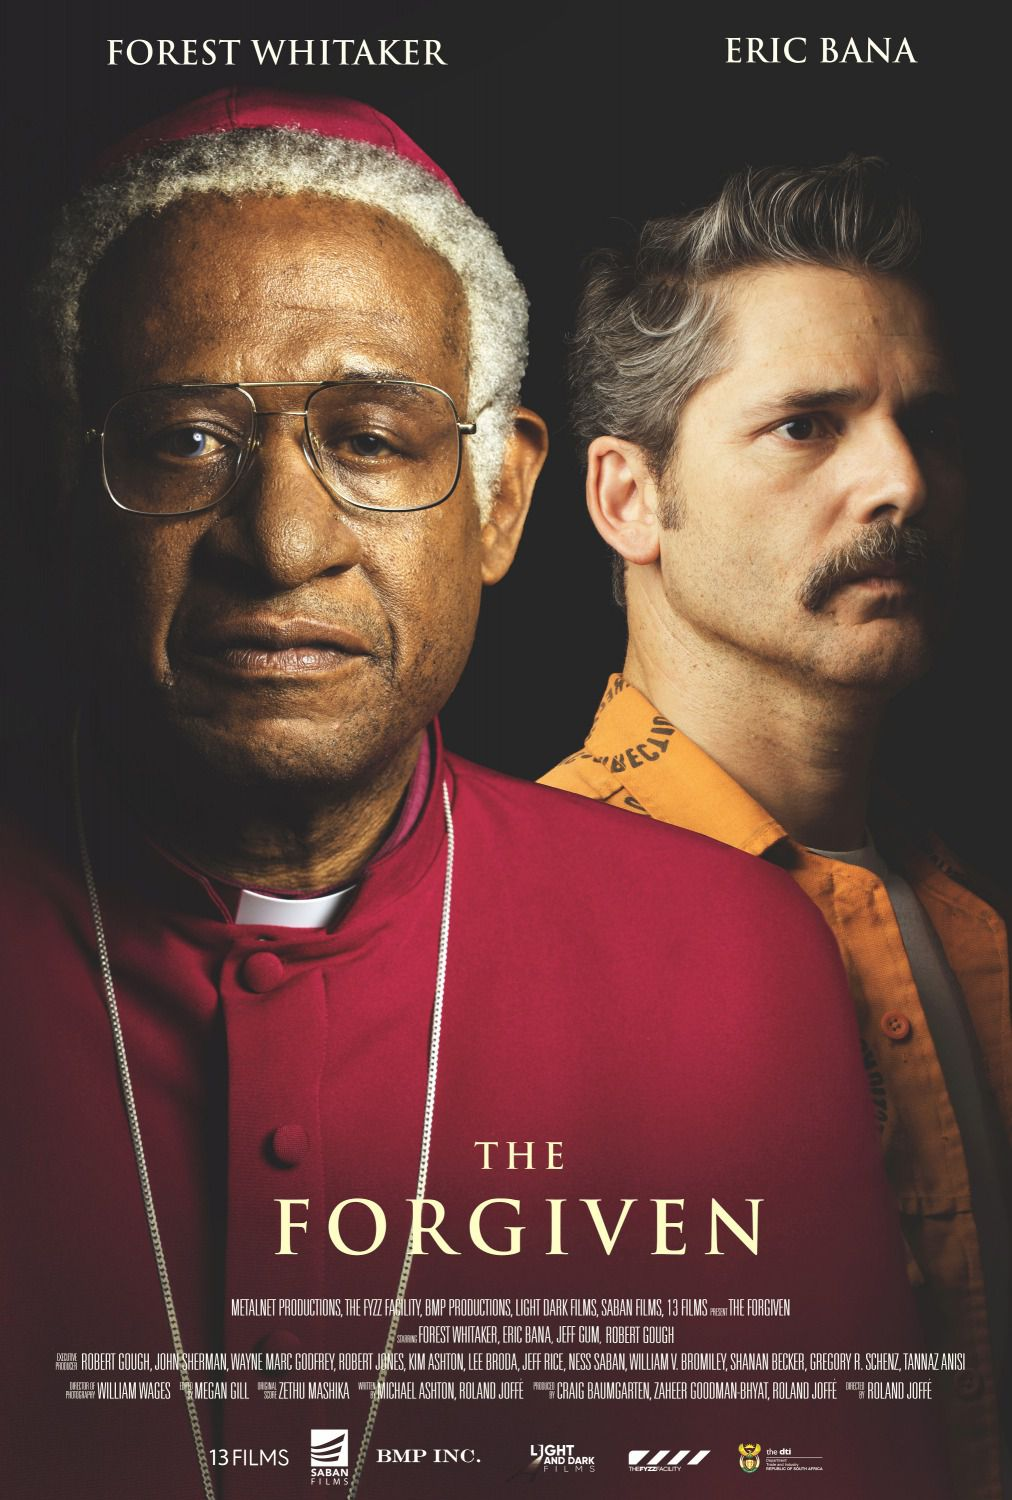 The Forgiven - Racist, Prisoner, Murderer, Child of God - Cast: Forest Whitaker, Eric Bana - film poster 2018